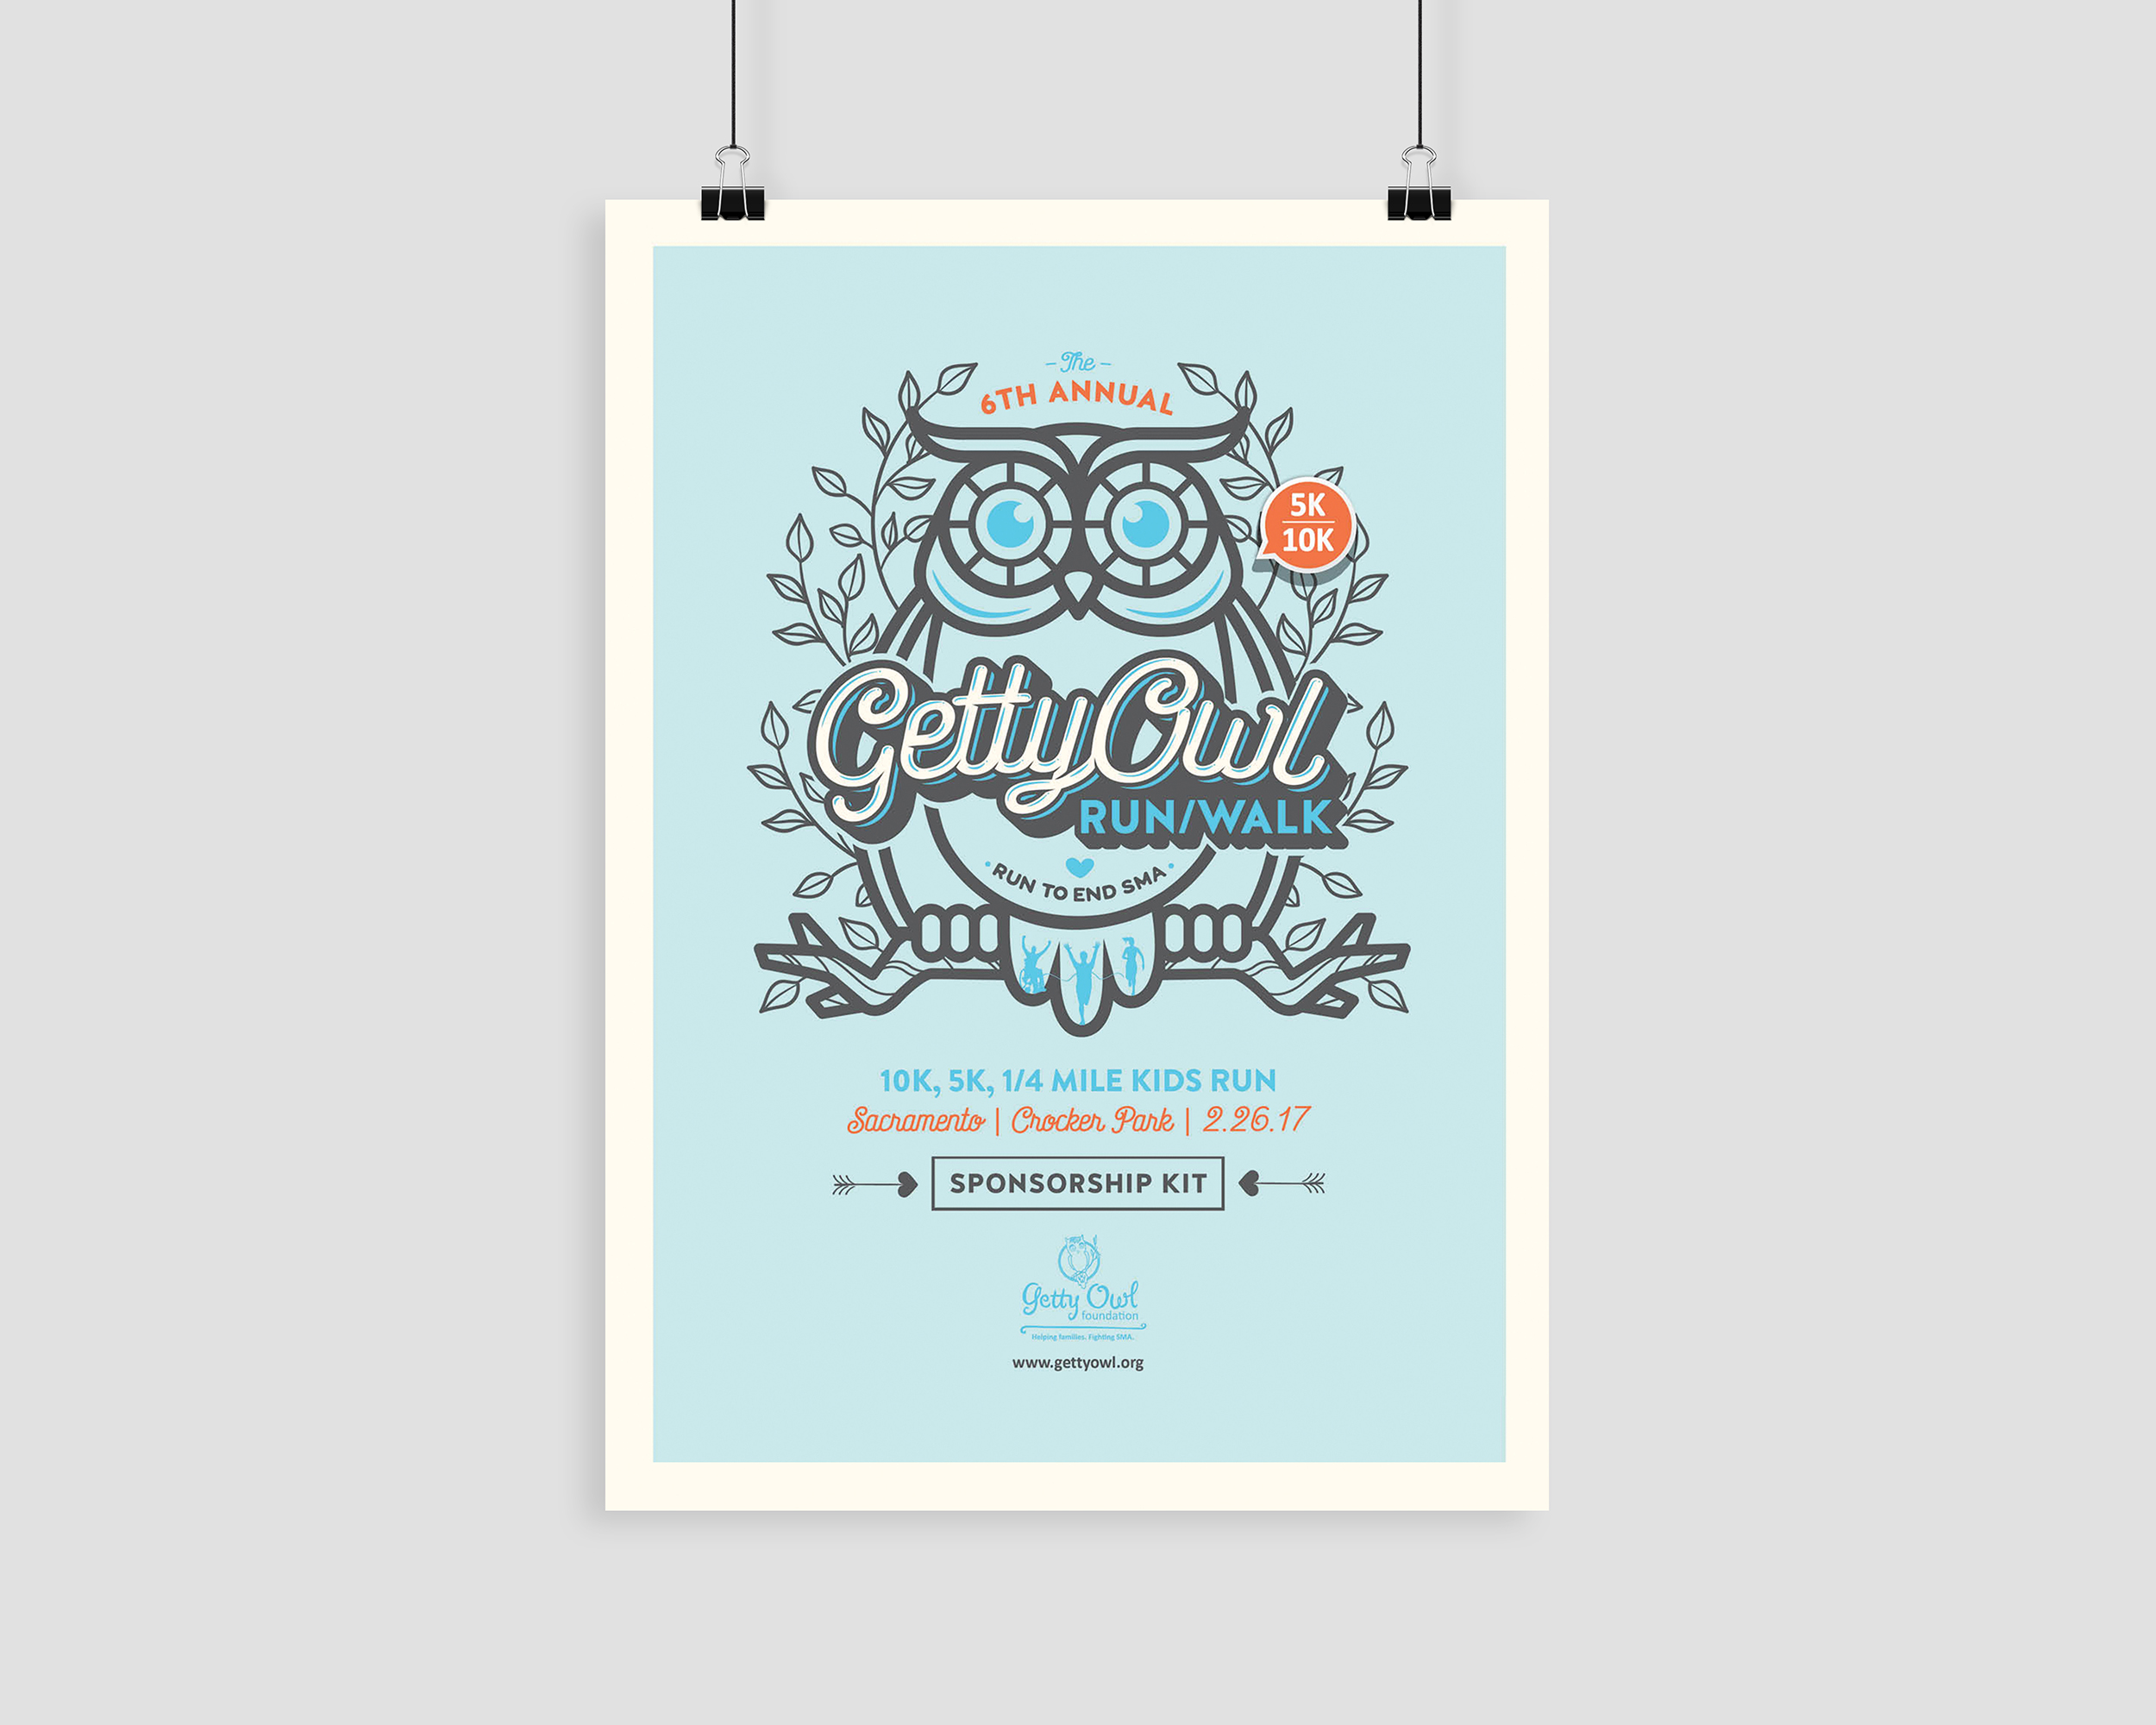 6th Annual Getty Owl Run Poster